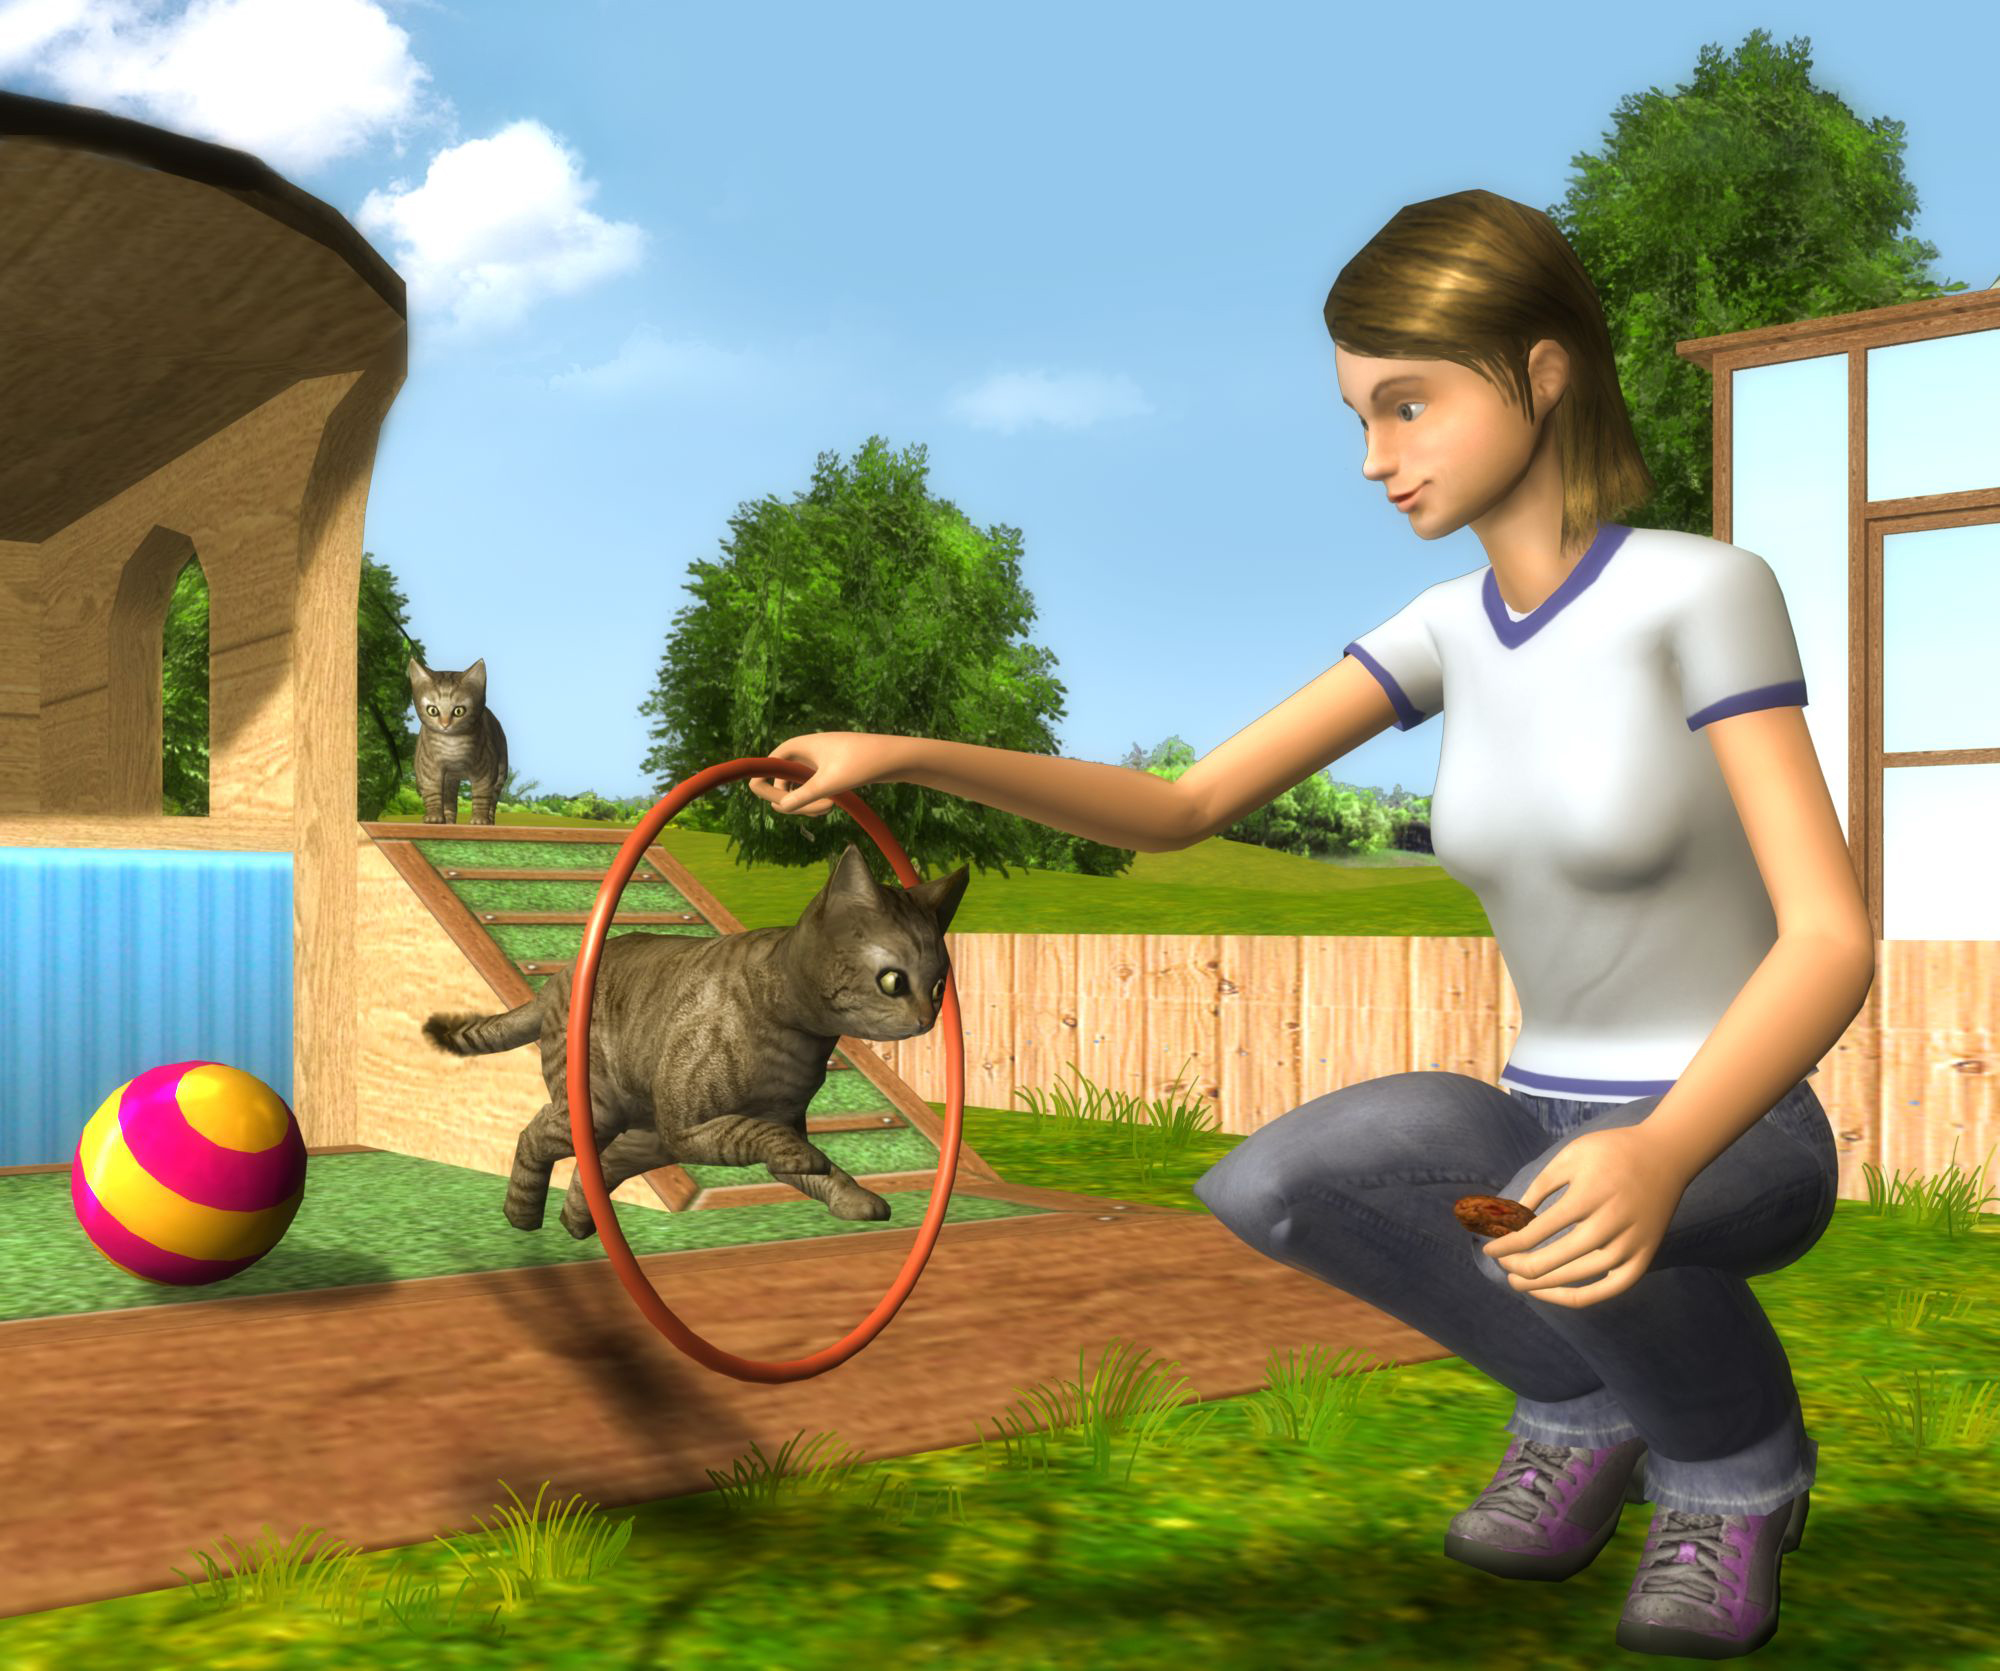 CTR-N_KPTE_PetSchool3D_BackgroundArt_3